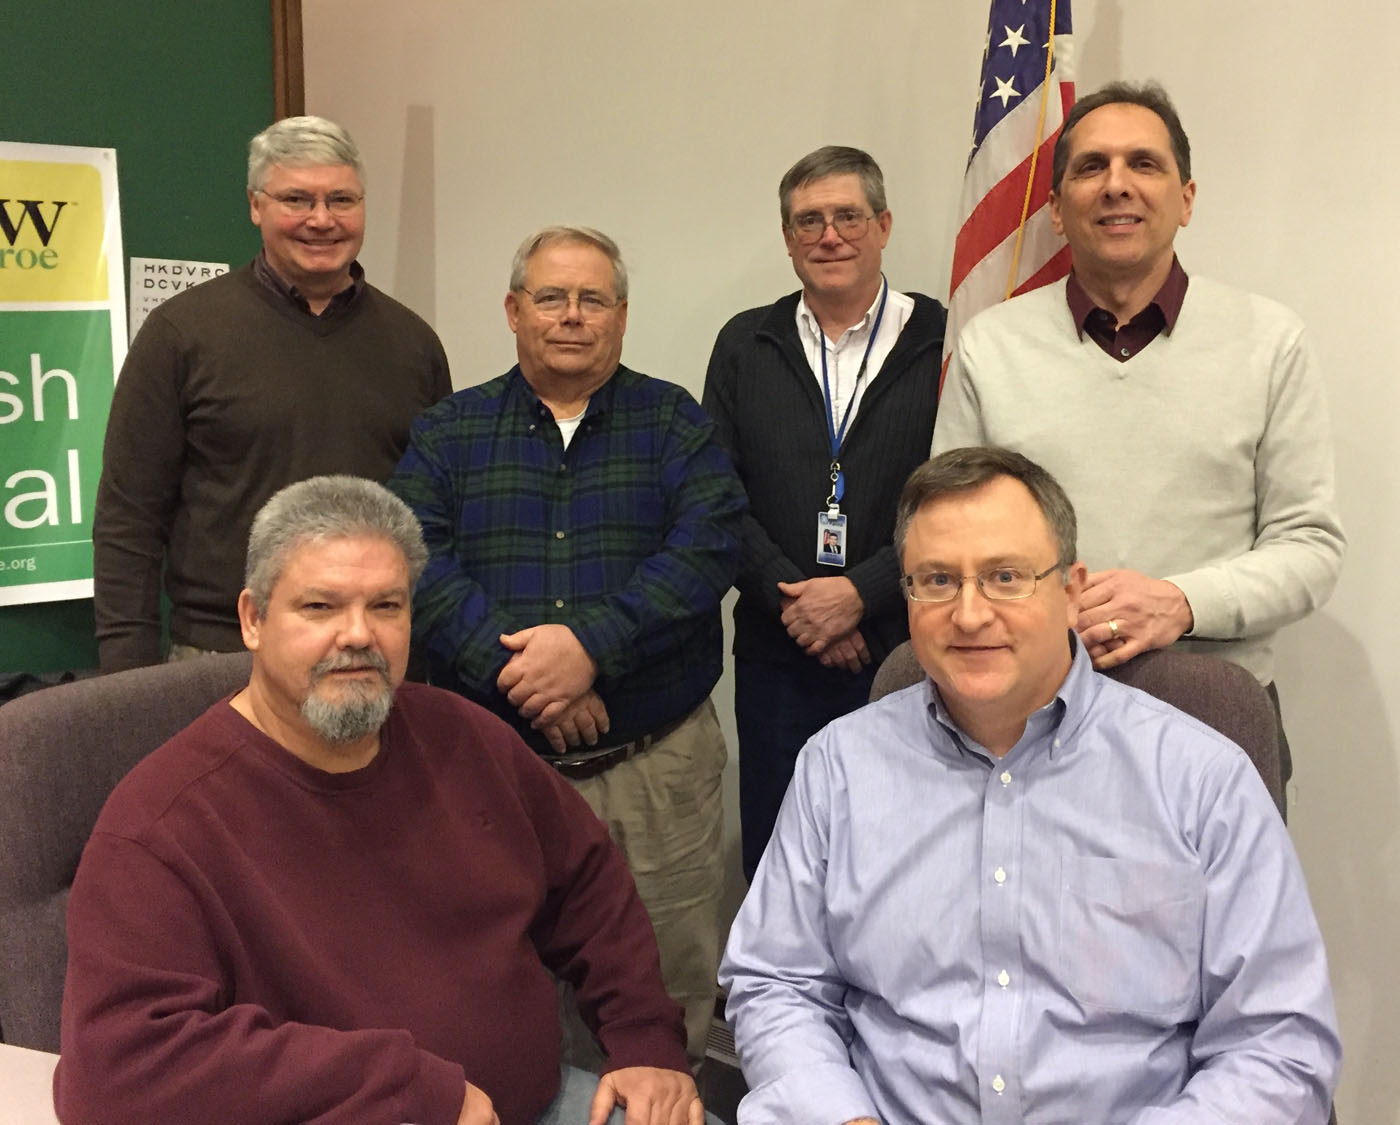 Pictured left to right: Front row - Gary Comardo and Kyle Mullen; Back row - Dan Barlow, Brian Speer, Jim Smith and Councilperson Jim Roose. Provided photo